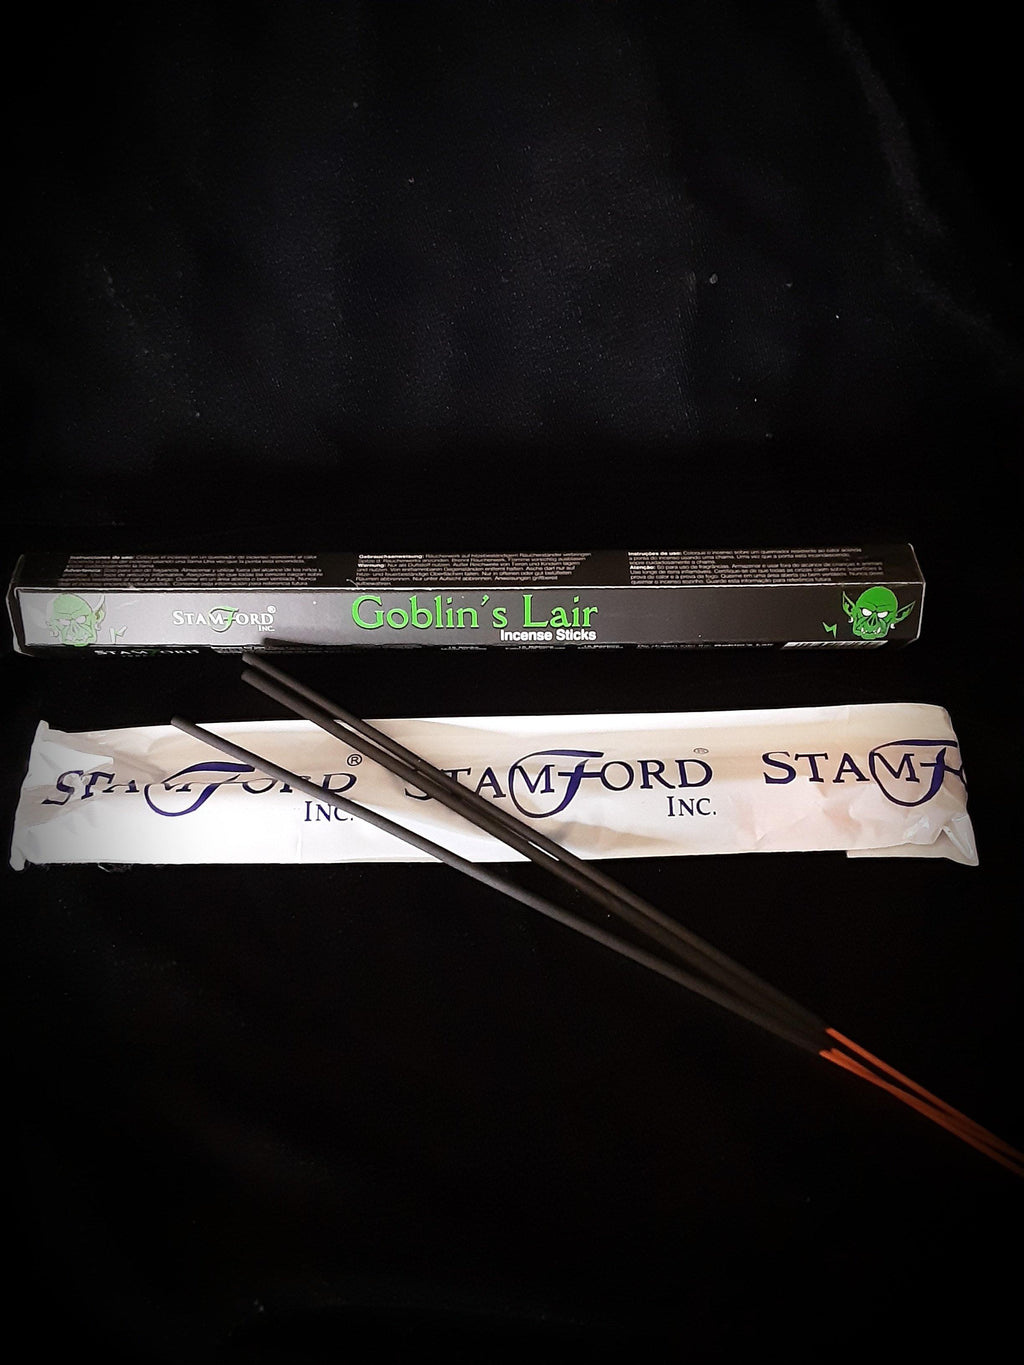 Stamford Goblins Lair Stick Incense